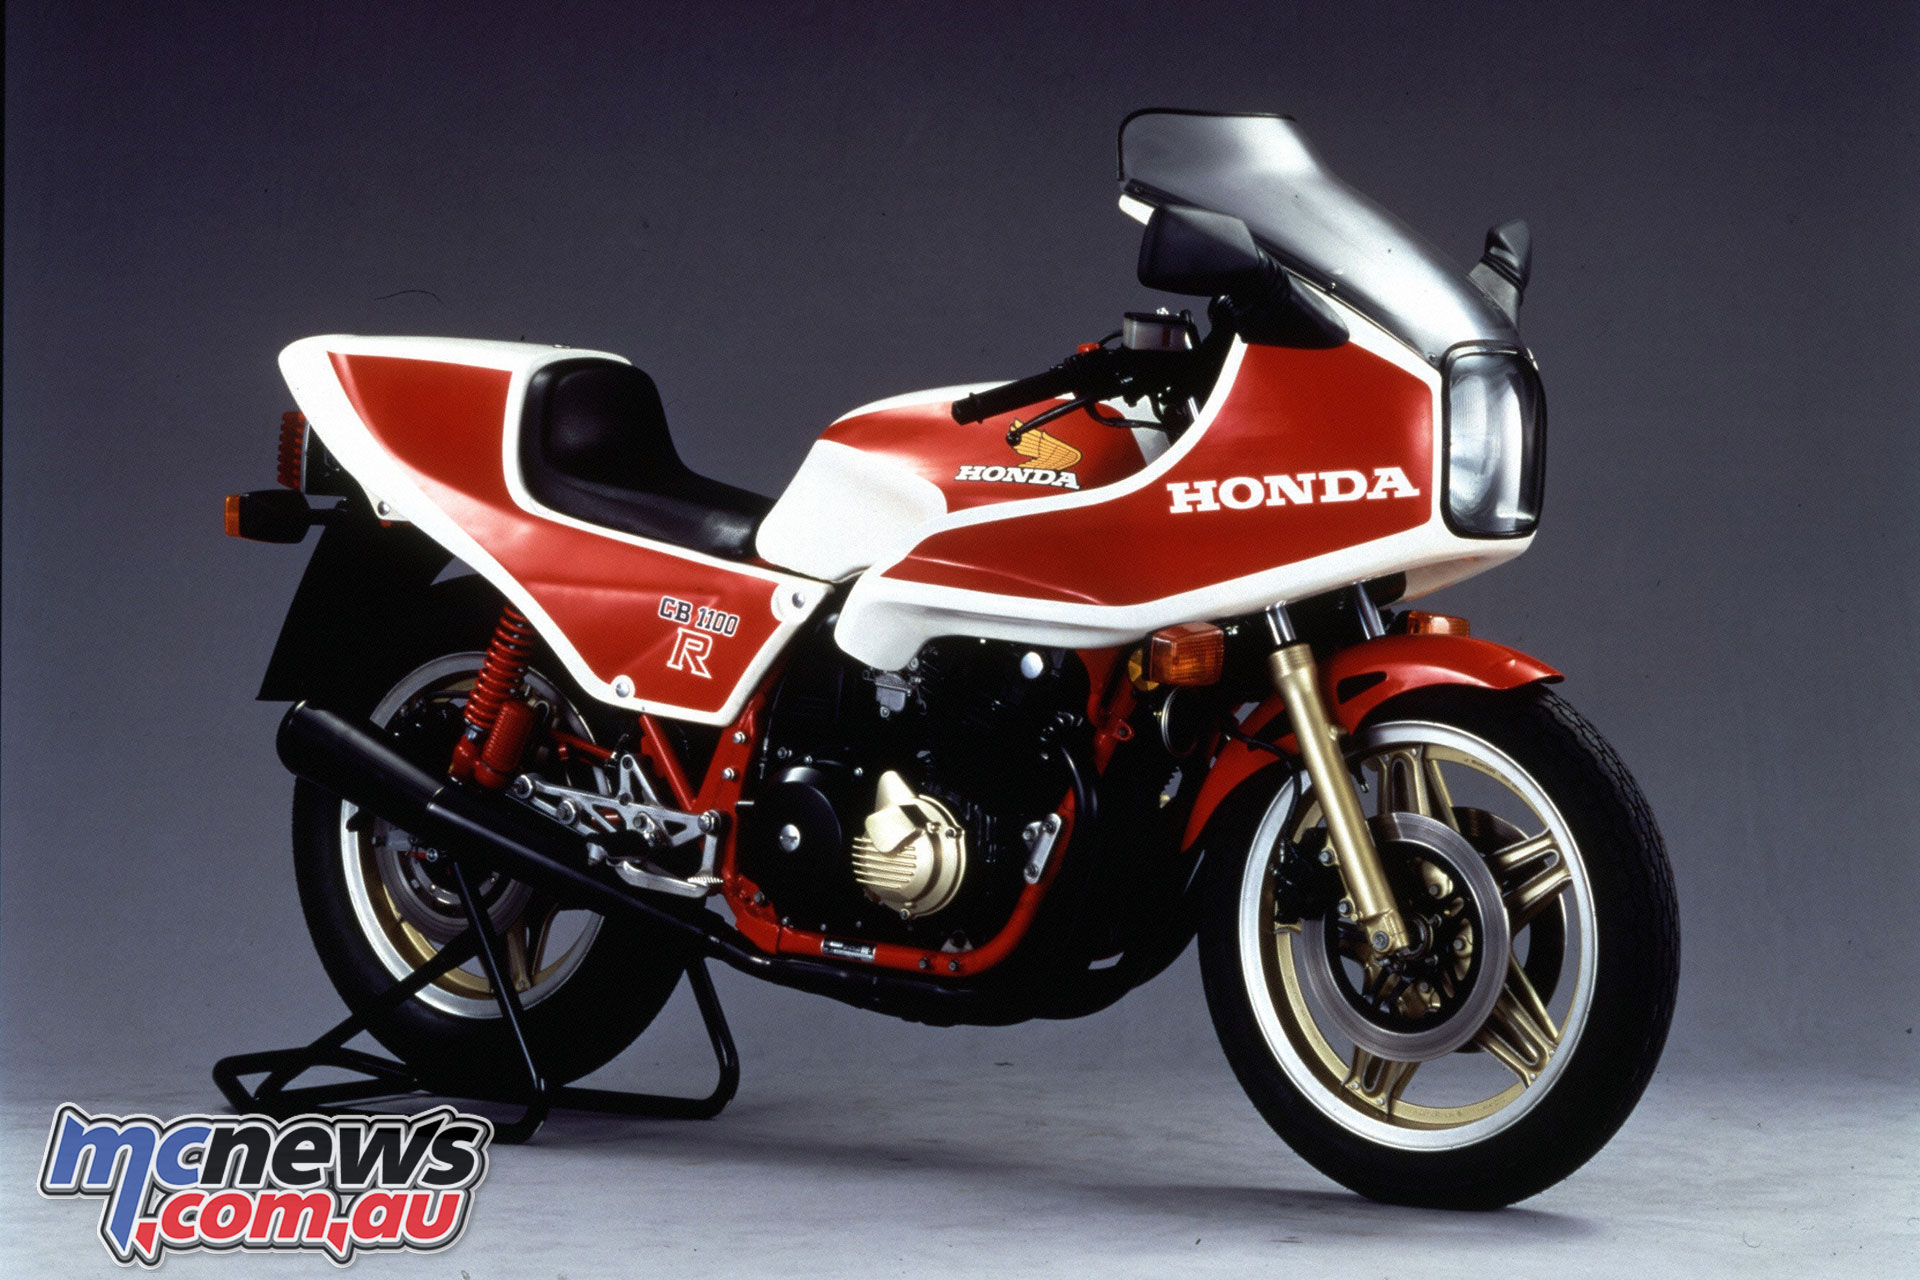 Wheels Waves Honda Honda CBR